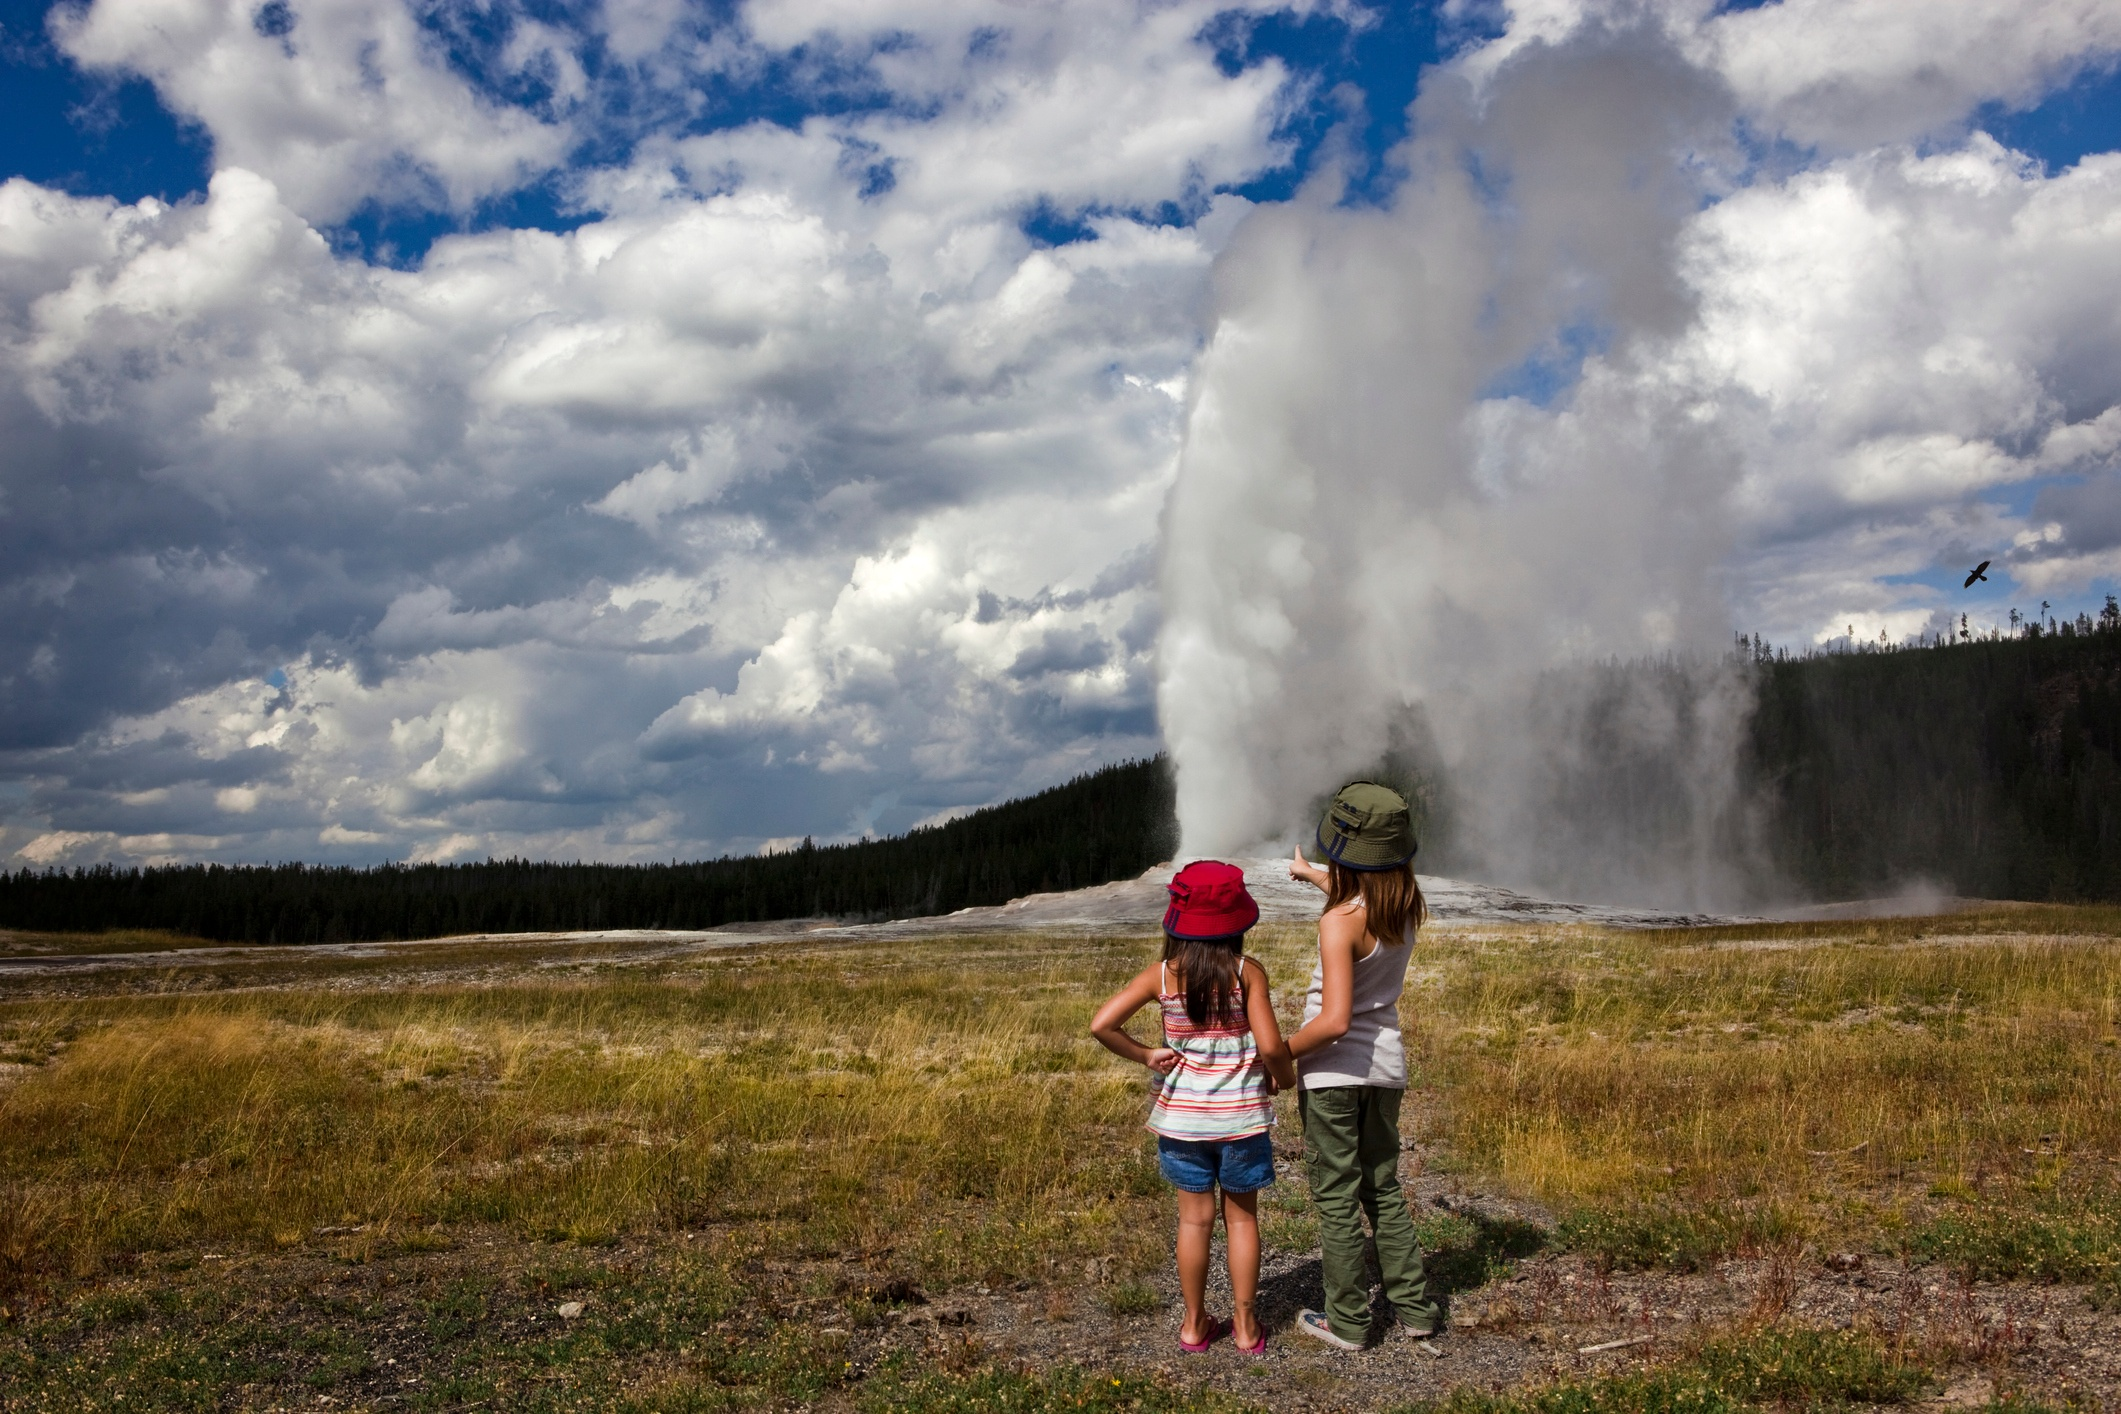 Family vacation to Bozeman and Yellowstone